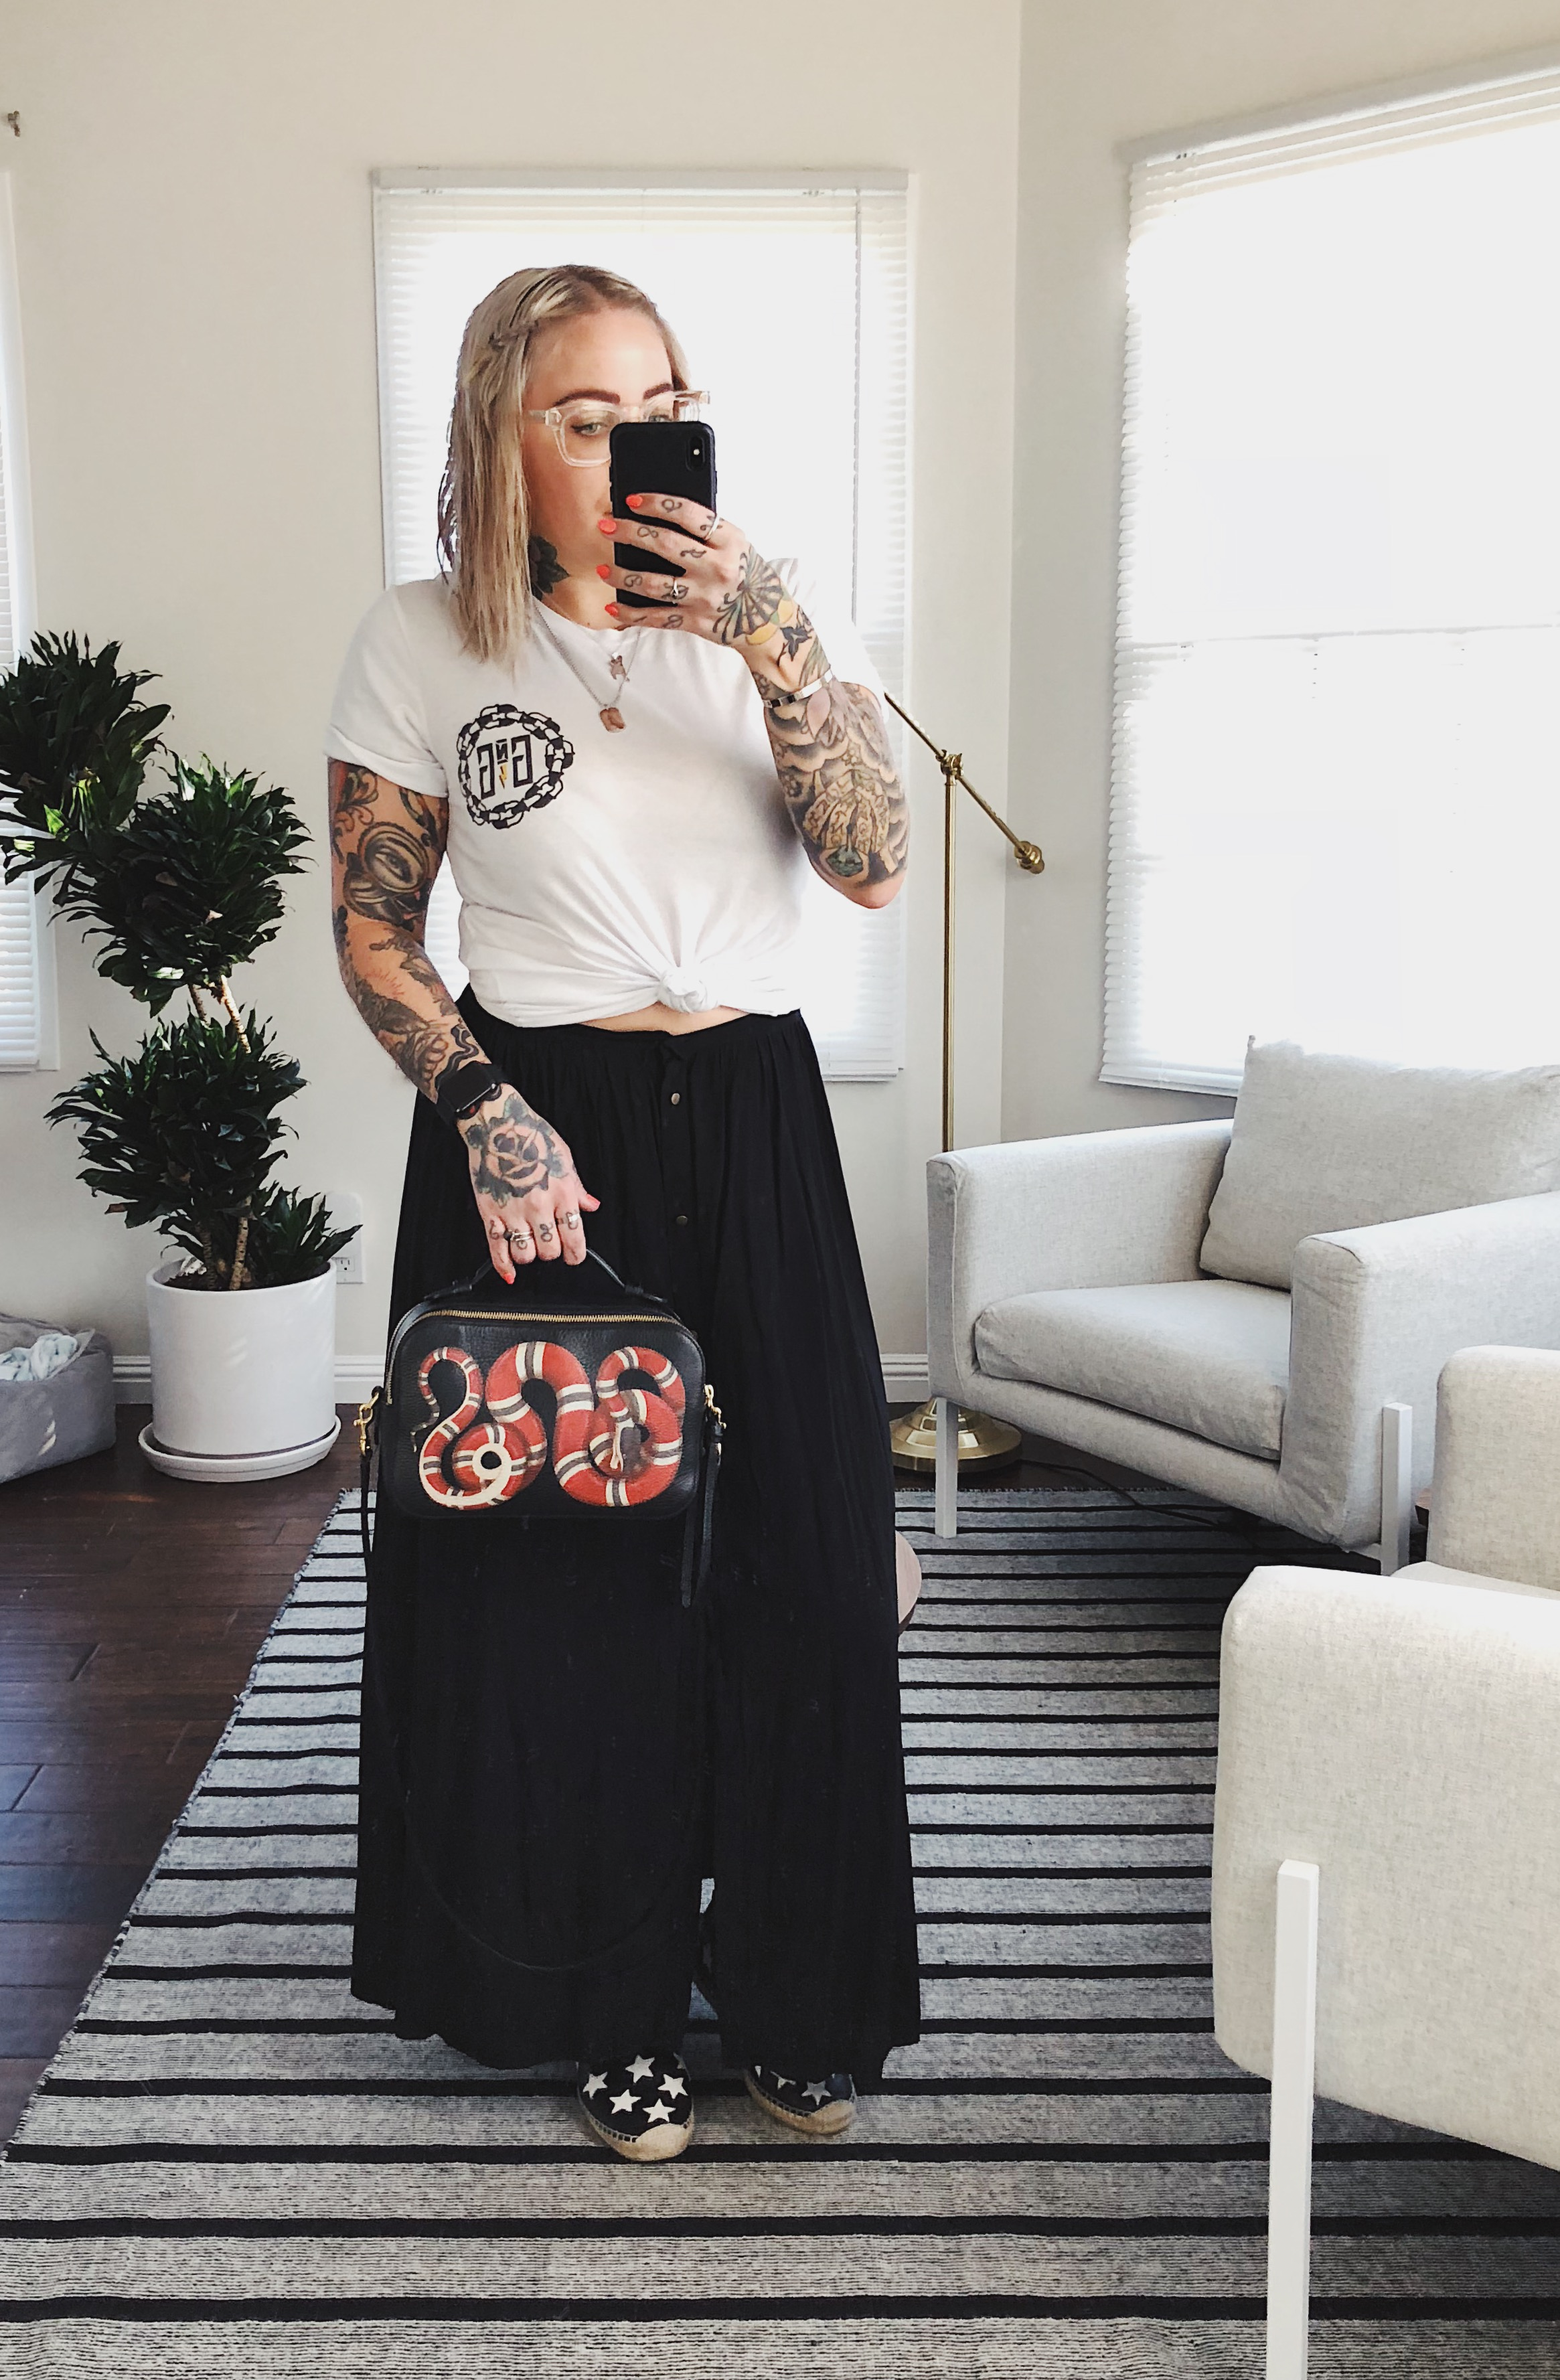 À la mode - I am not one to spend hours getting ready, and I am not one to dress uncomfortably! It's all about keeping it simple, feeling good about yourself and be comfortable.I paired an a-line buttoned skirt with a tattoo shop t-shirt (or any favorite band tee you may have!). For a very casual look, I picked Saint-Laurent espadrilles, but a pair of Converse would do just as good! As I do almost every day, I grabbed my snake Gucci purse because lets be honest, it is the best! Unfortunately, it has been sold out for a very long time, so I will try my best to link up similar bags at a more affordable price every time it's part of an outfit.Click here to shop skirt.Click here to shop shirt.Click here to shop similar sneakers.Click here to shop similar bag.